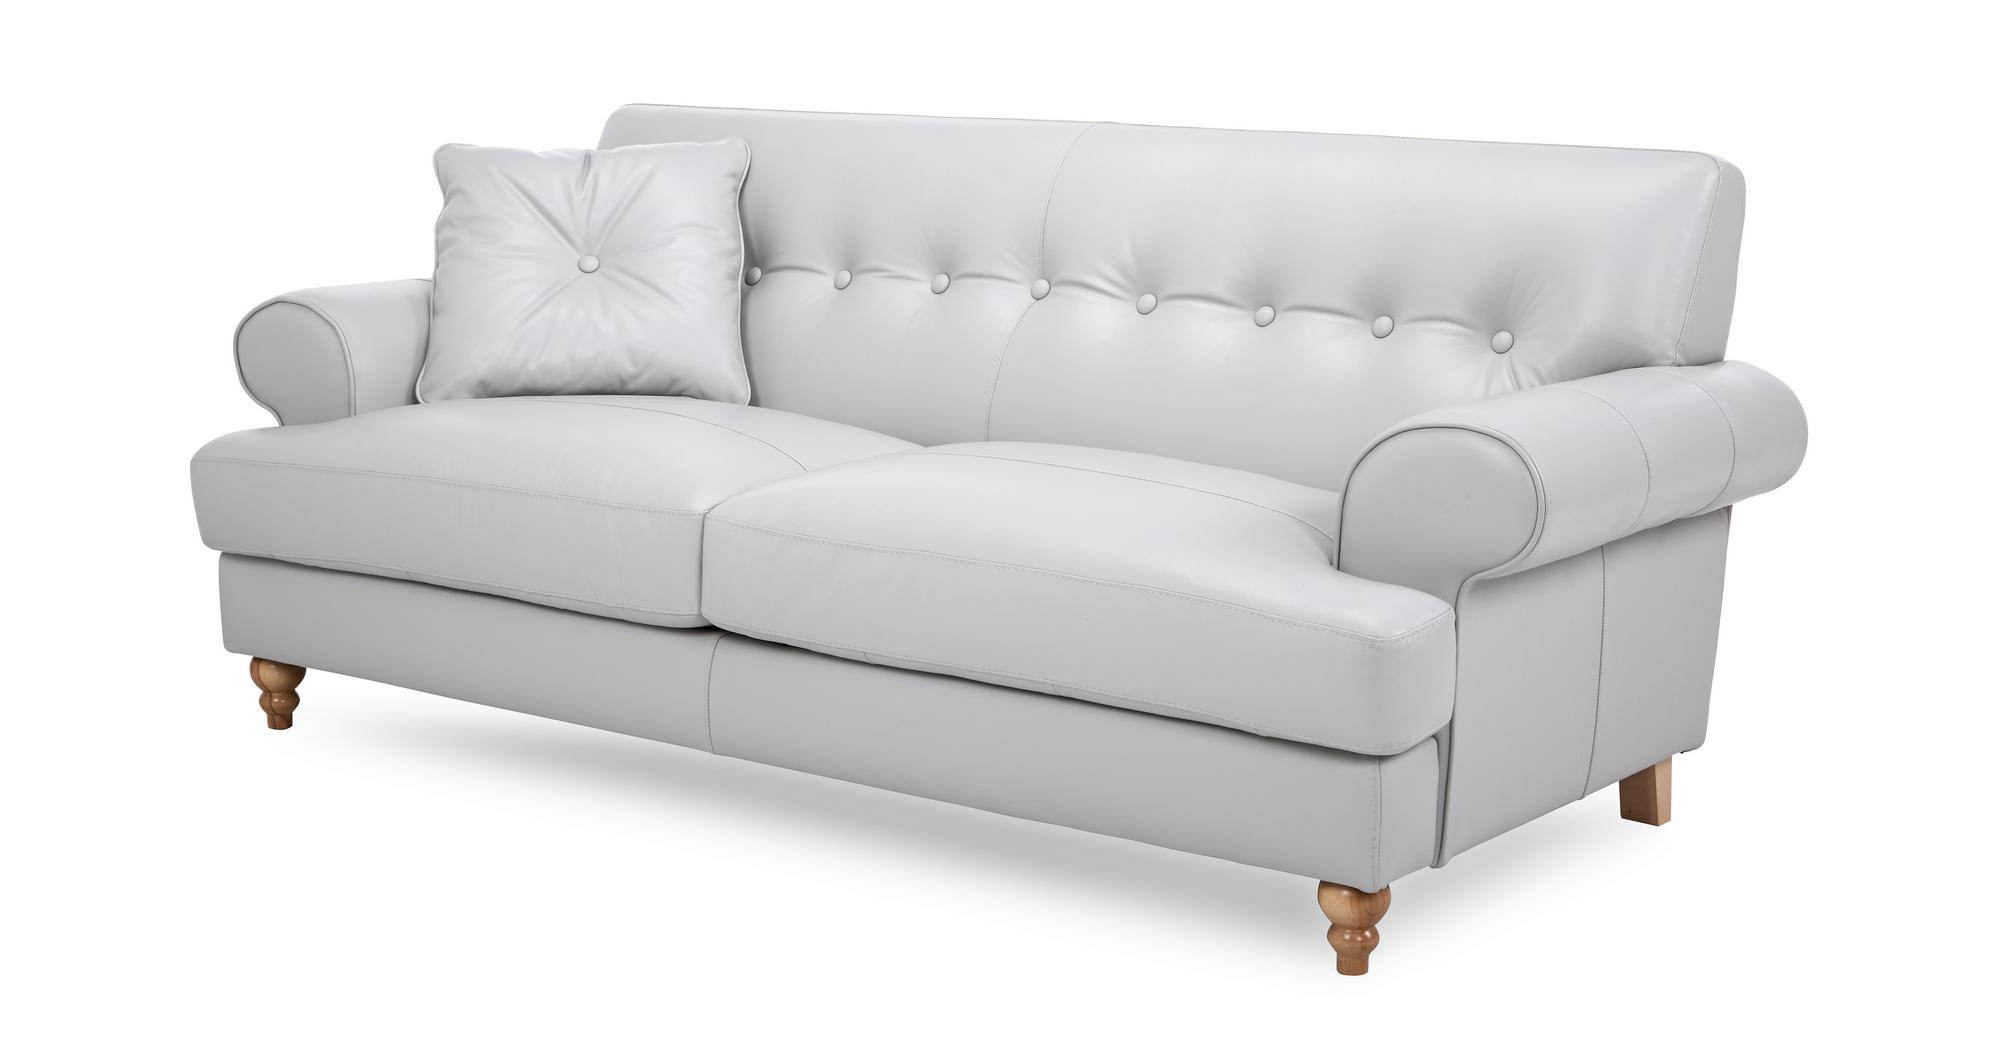 grey leather chesterfield sofa dfs reclining houston arcade 3 seater 85324 ebay